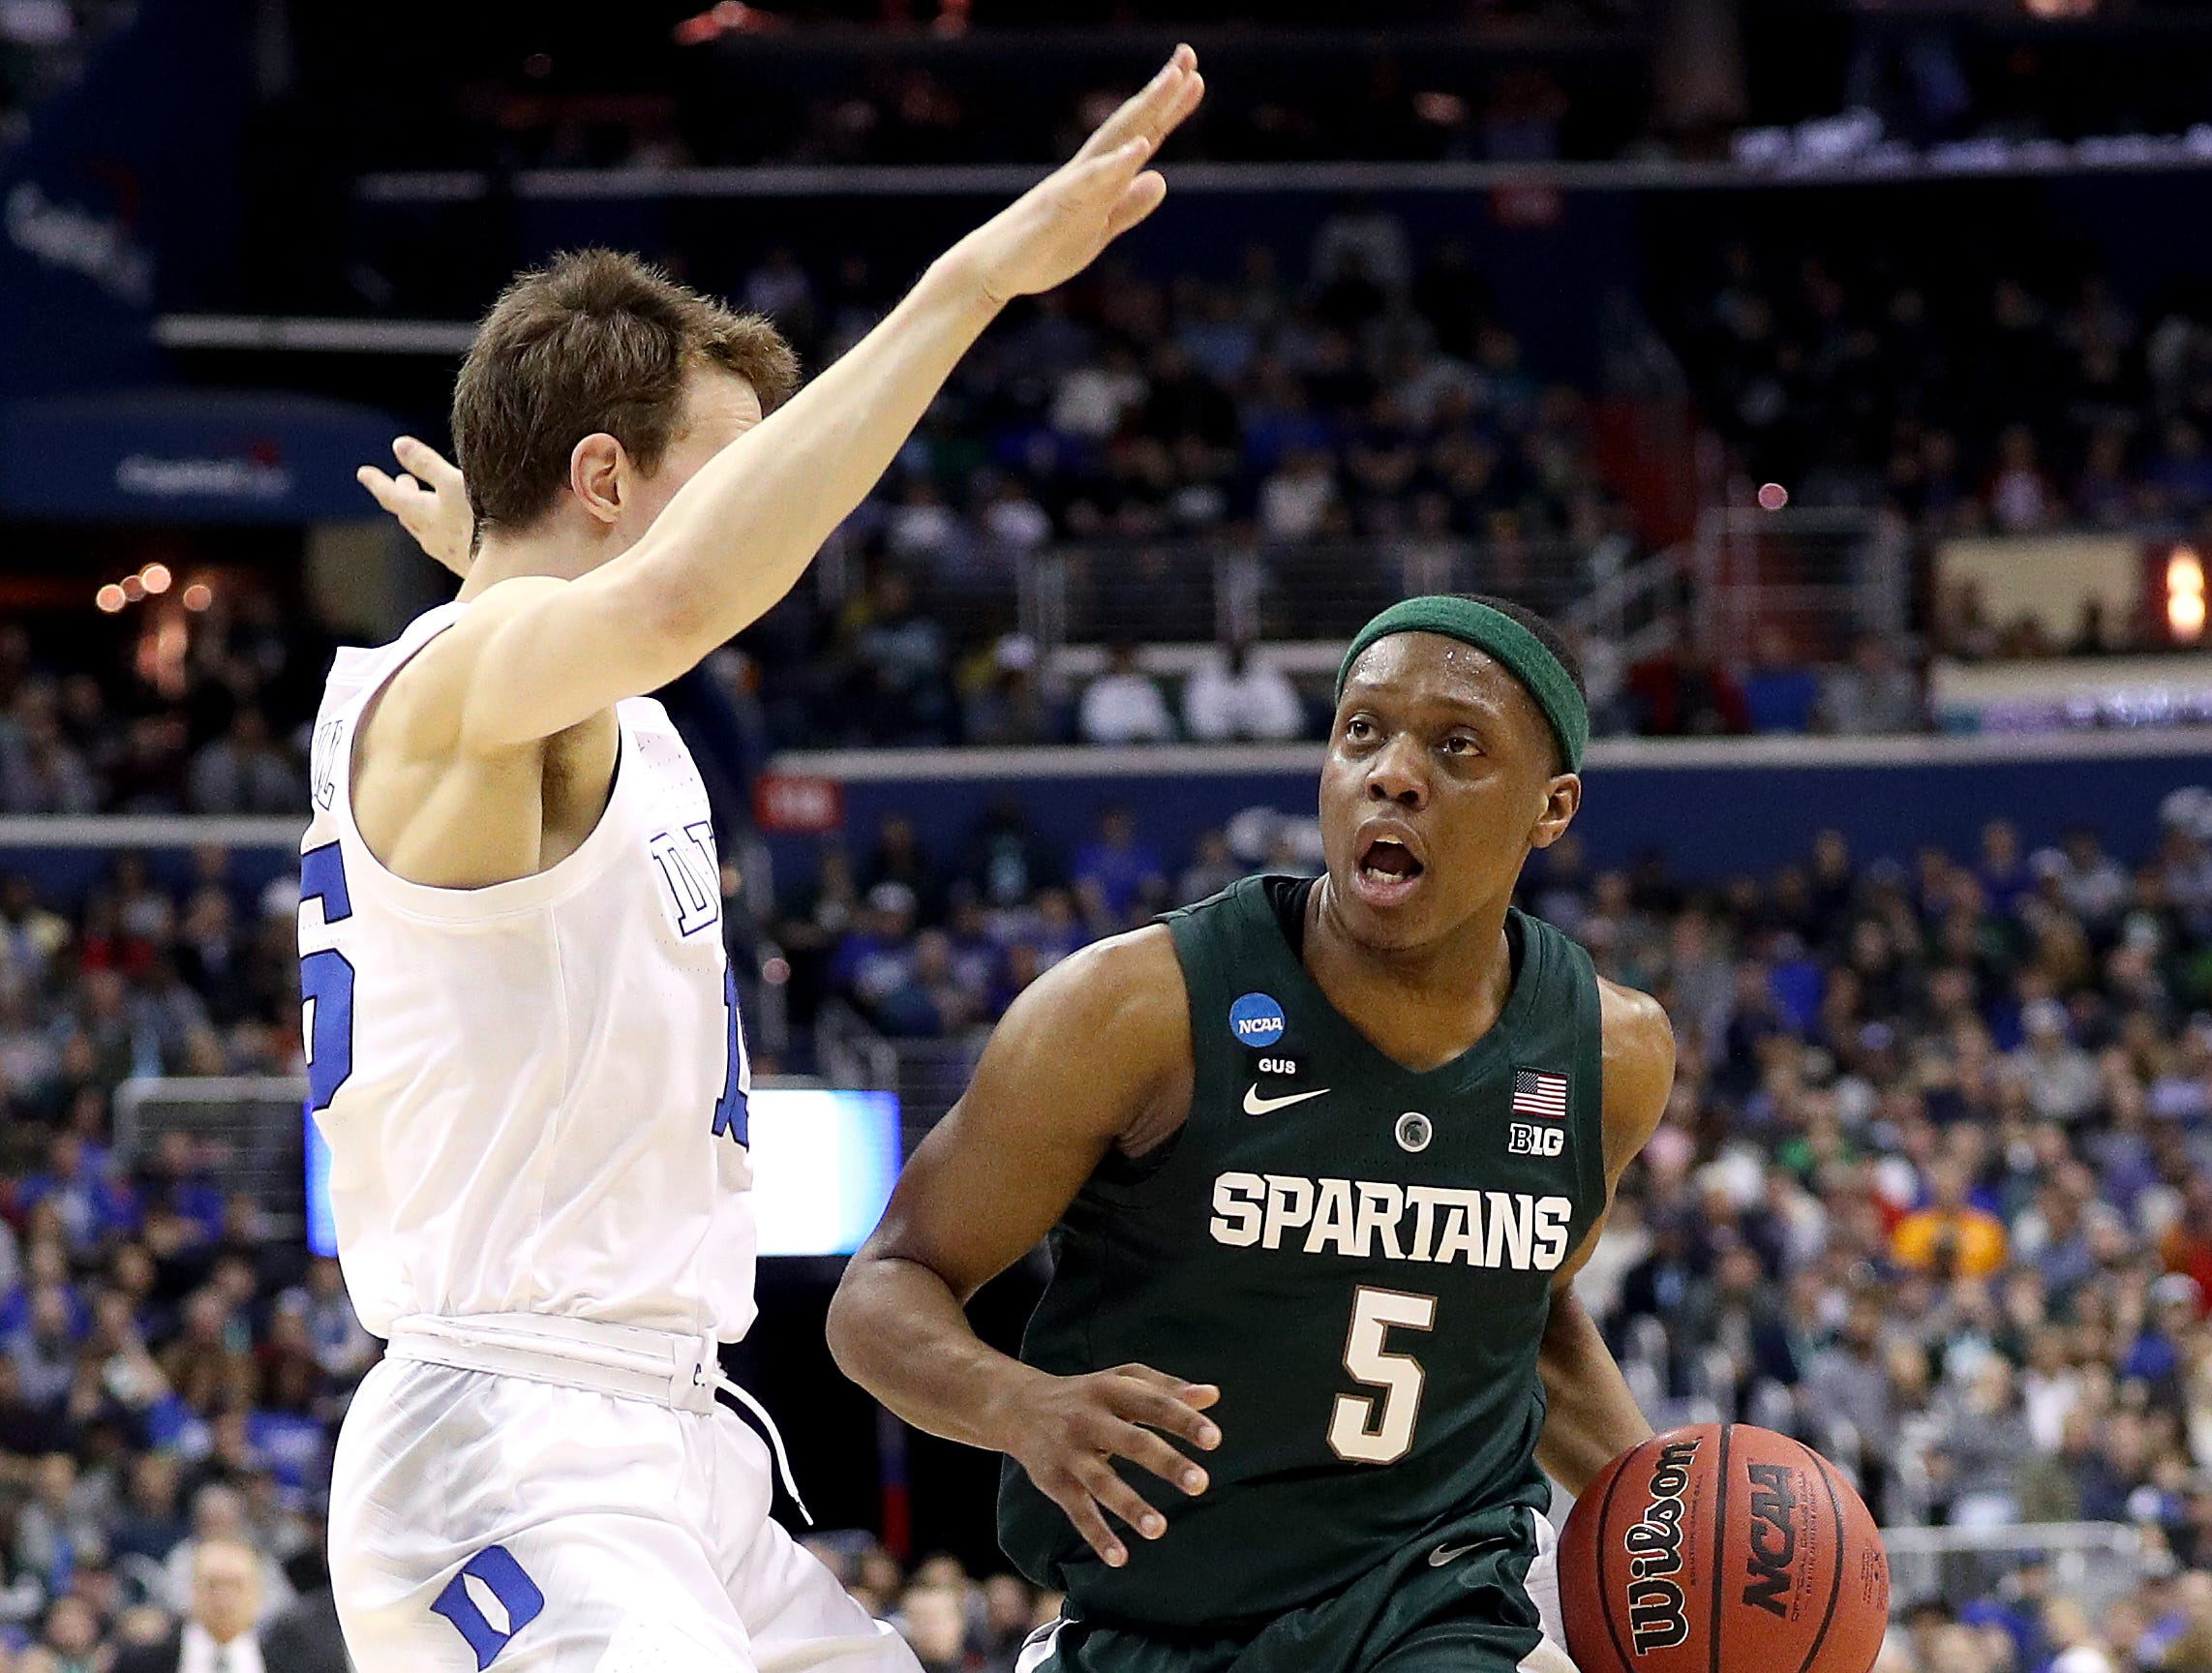 Cassius Winston #5 of the Michigan State Spartans drives to the basket against Alex O'Connell #15 of the Duke Blue Devils during the first half in the East Regional game of the 2019 NCAA Men's Basketball Tournament at Capital One Arena on March 31, 2019 in Washington, DC.